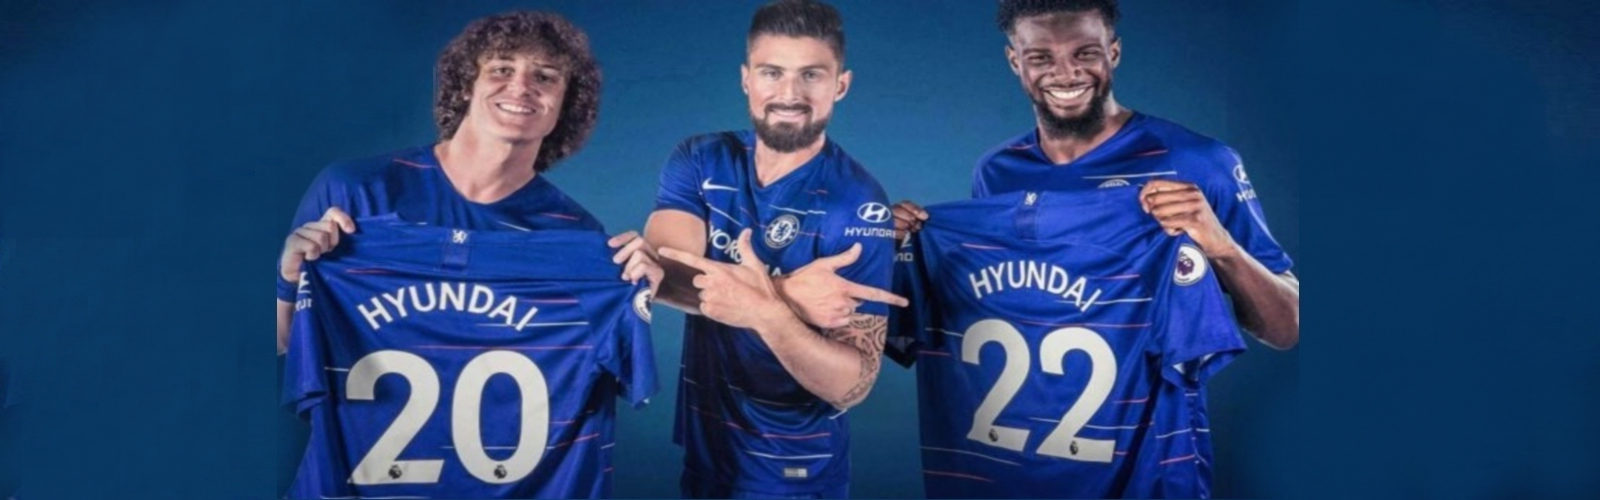 2018-19 Chelsea home, away, third jersey